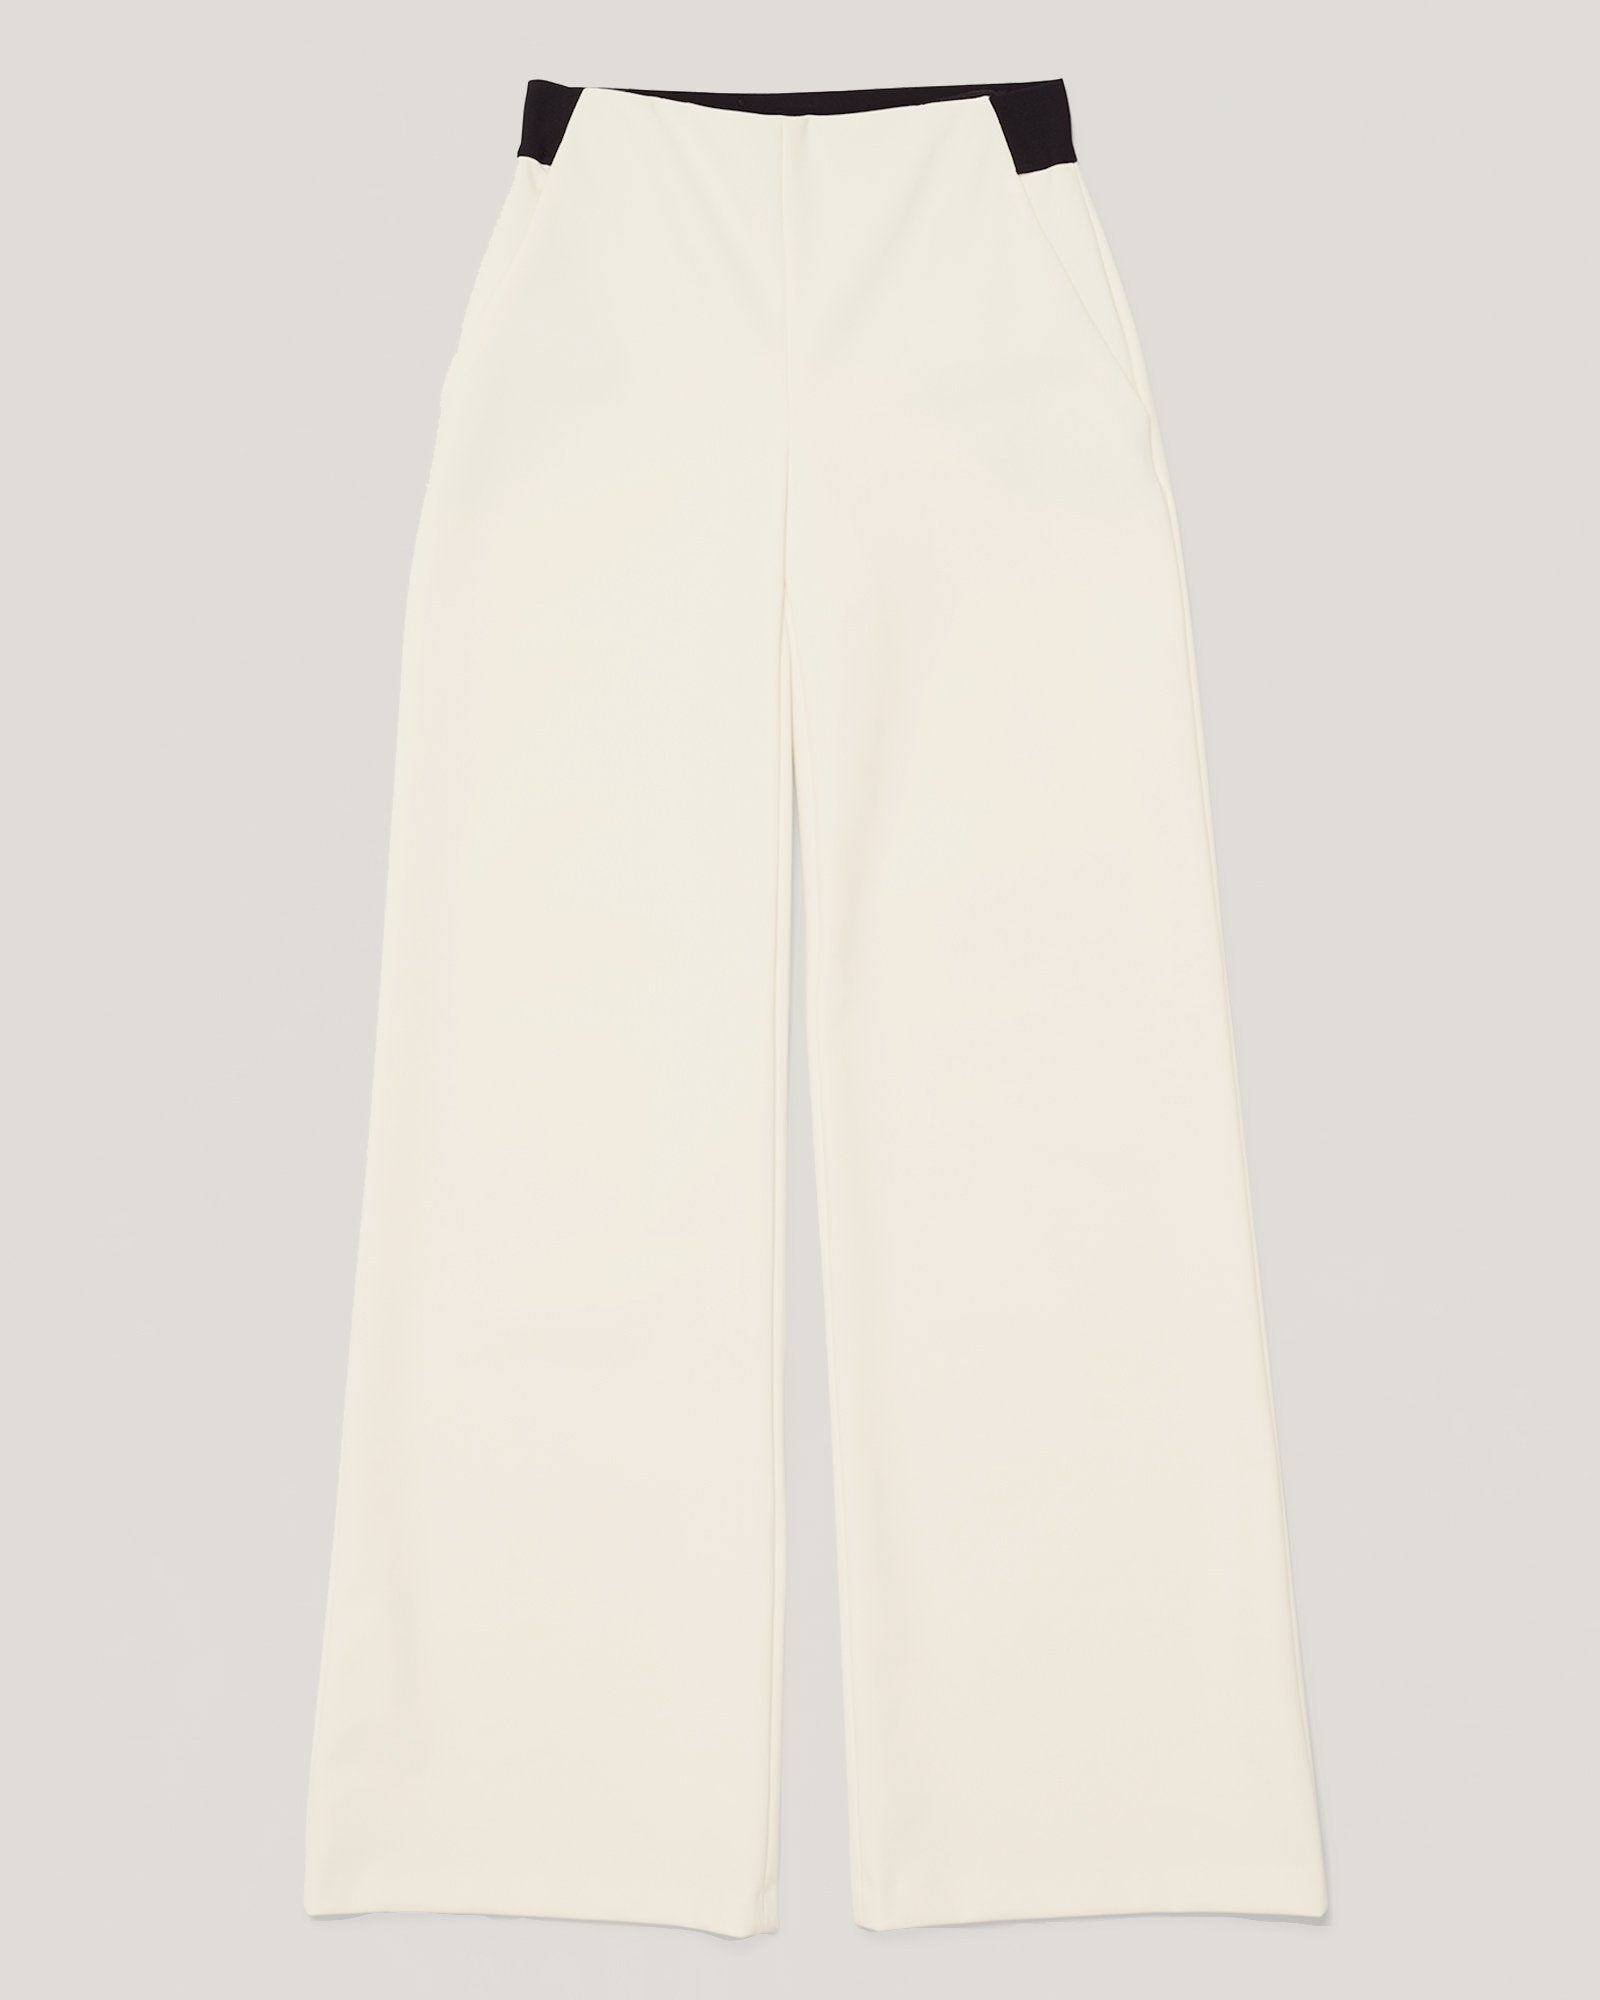 Collateral Pant Ivory